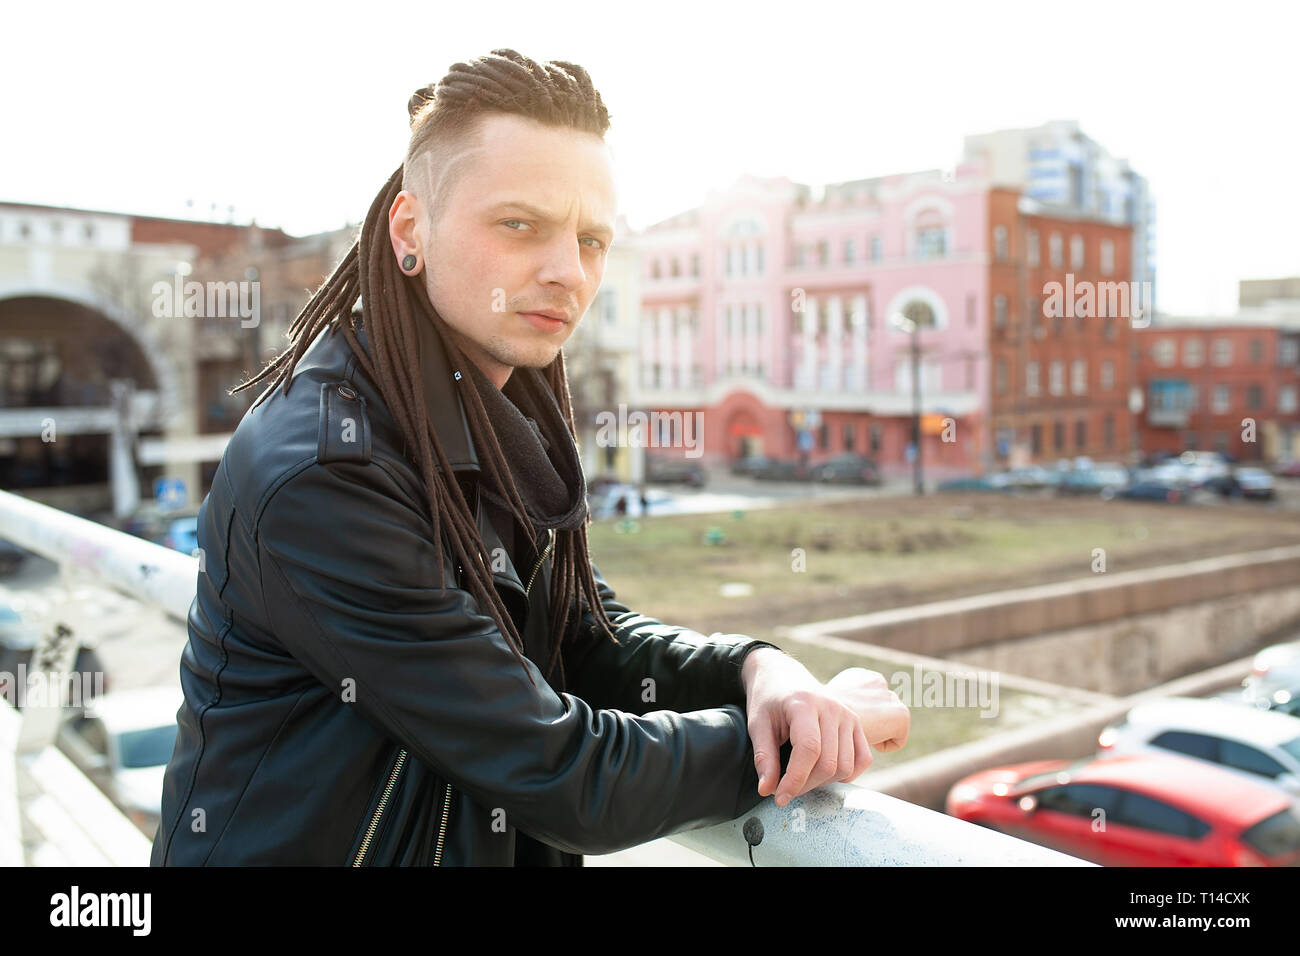 rocker rock star young man walking on the city street autumn day - Stock Image